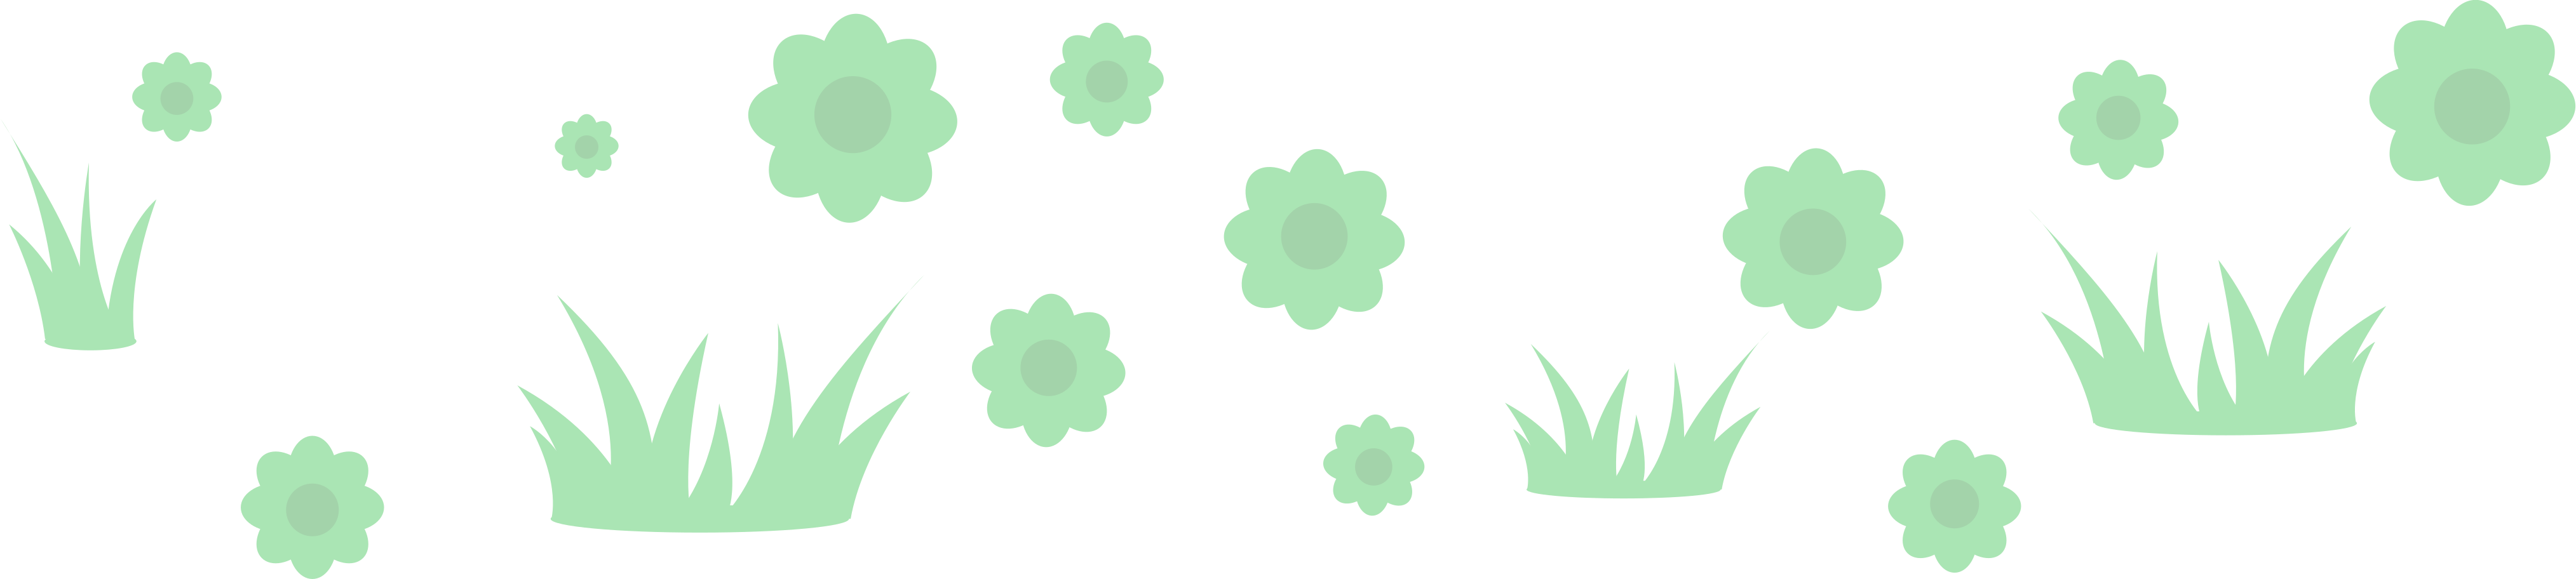 grass-and-flowers Clipart illustration in PNG, SVG